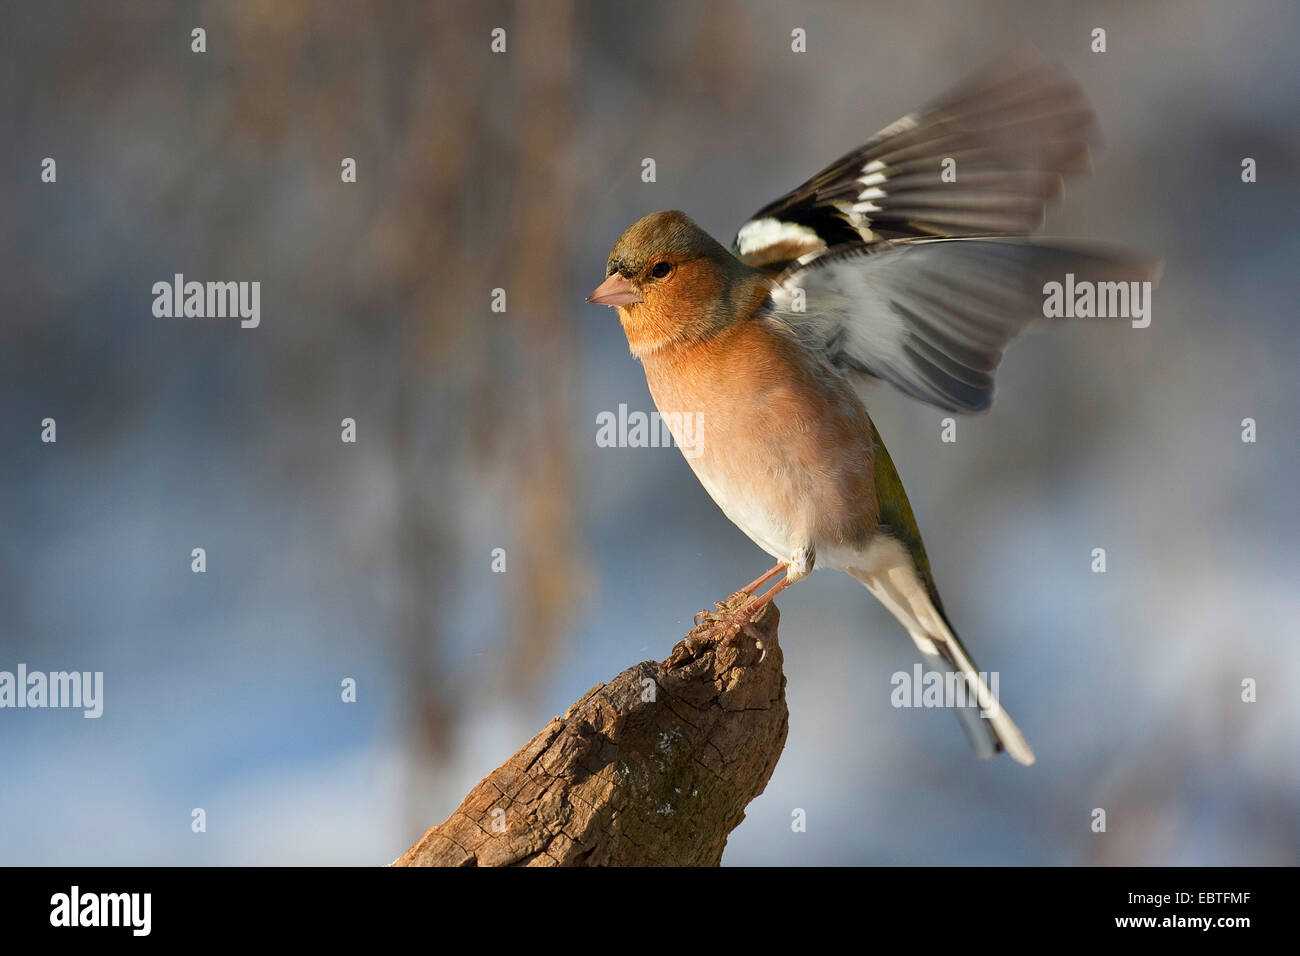 chaffinch (Fringilla coelebs), male flaping wings, Germany - Stock Image